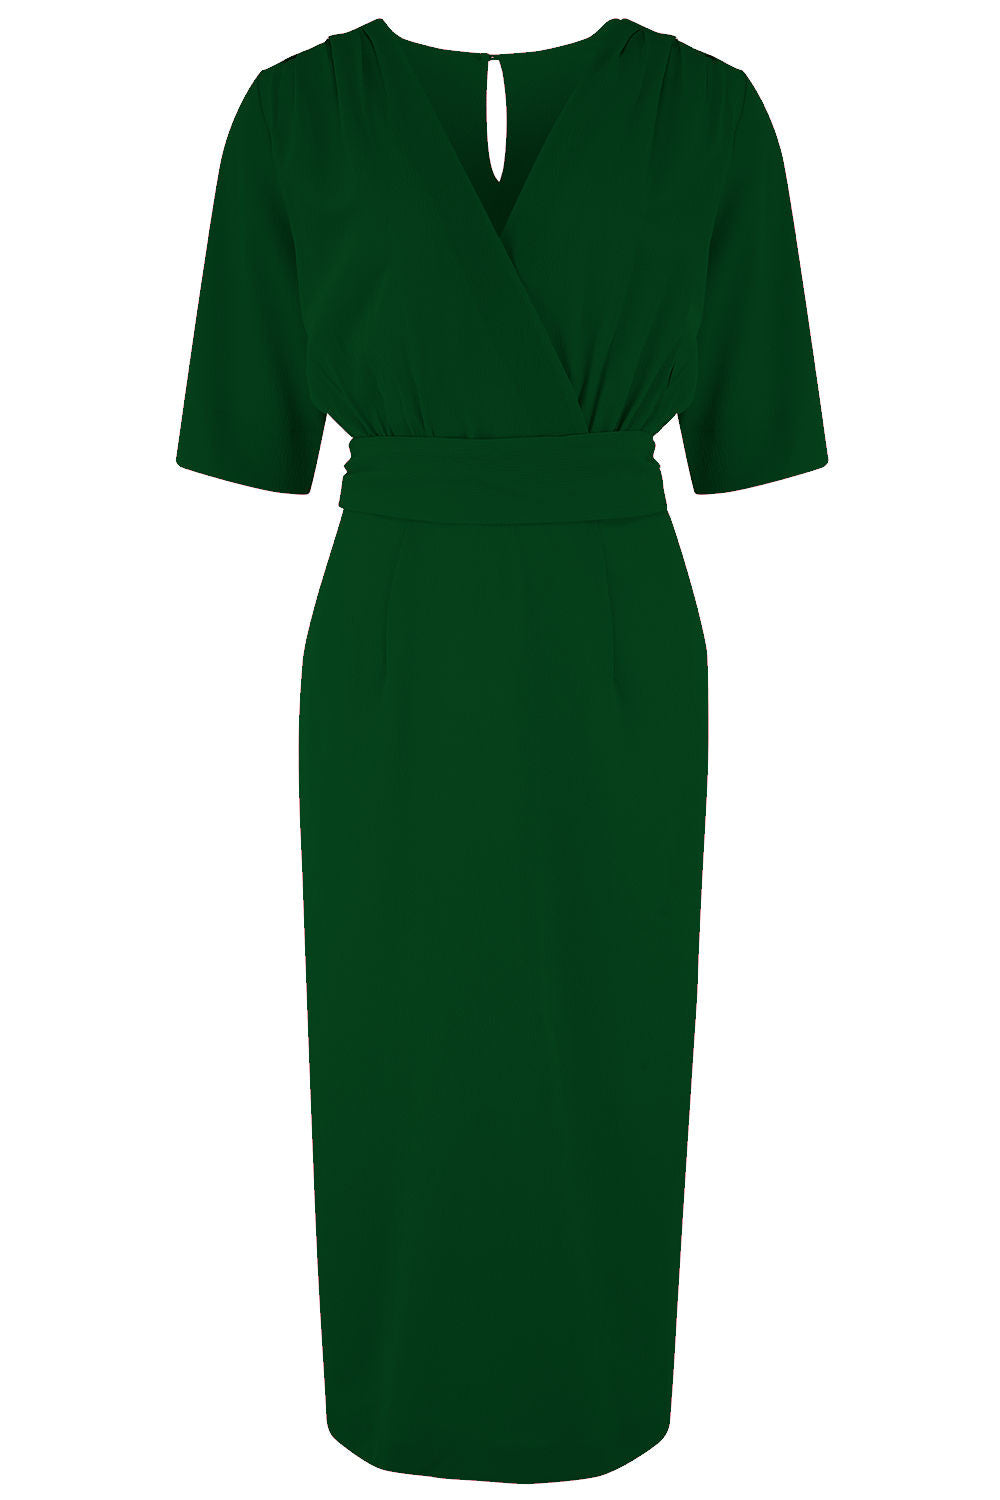 1950s Dresses, 50s Dresses | 1950s Style Dresses Pre-Order The Evelyn Wiggle Dress in Green True Late 40s Early 50s Vintage Style £49.00 AT vintagedancer.com